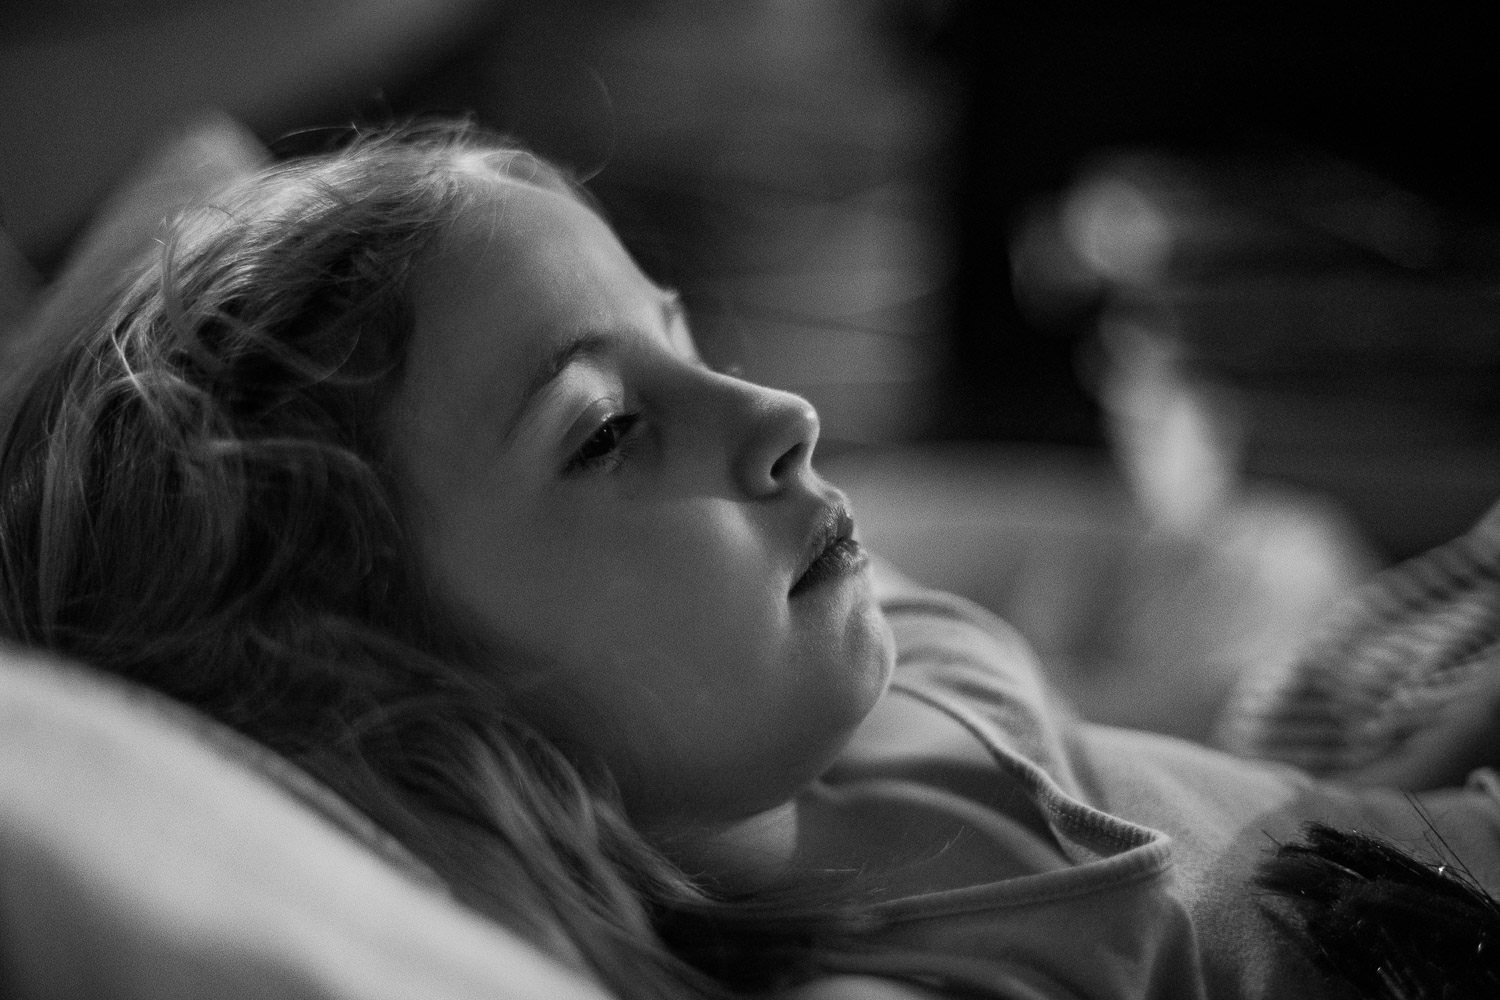 The profile of a little girl lying down.